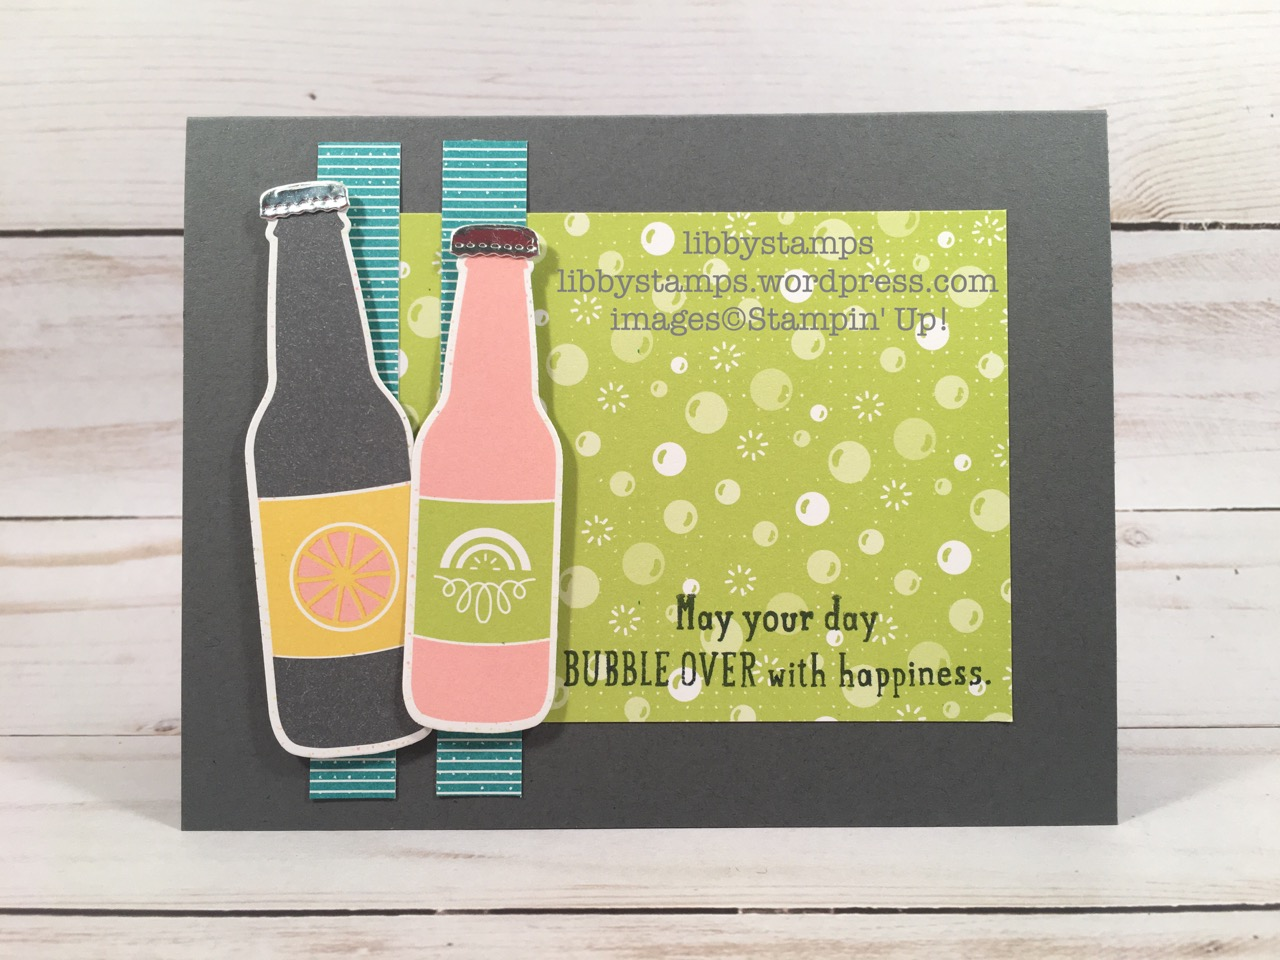 libbystamps, stampin up, Bubble Over, Bottles & Bubbles Framelits, Bubble Over Bundle, Bubbles & Fizz DSP, CCMC